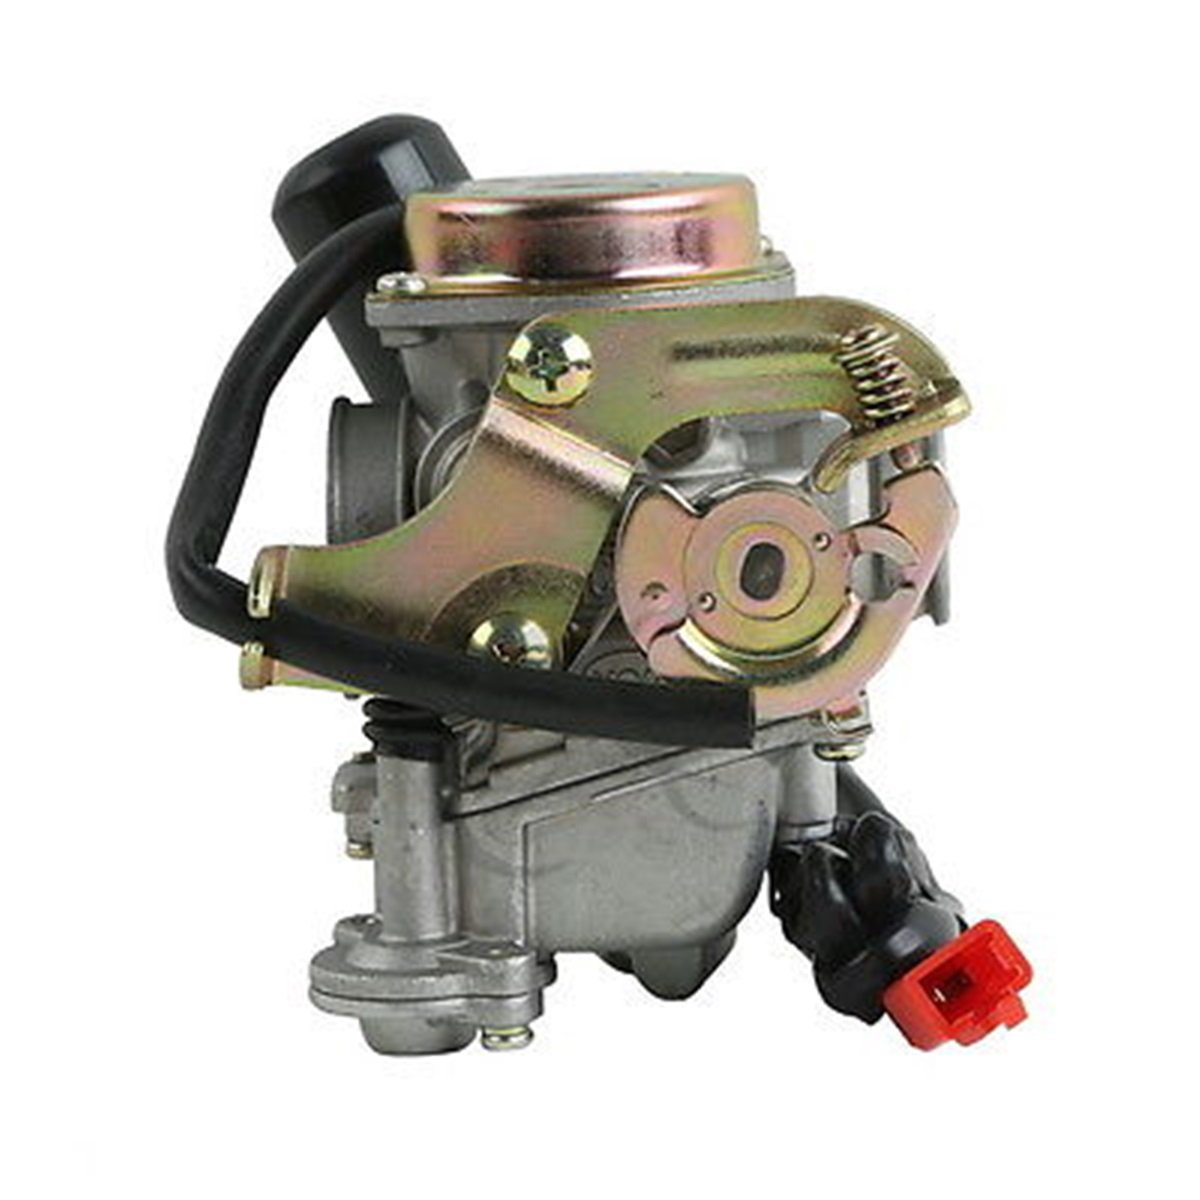 50cc SCOOTER Carb CARBURETOR ~ 4 stroke chinese GY6 139QMB engine moped SUNL by Onemoto